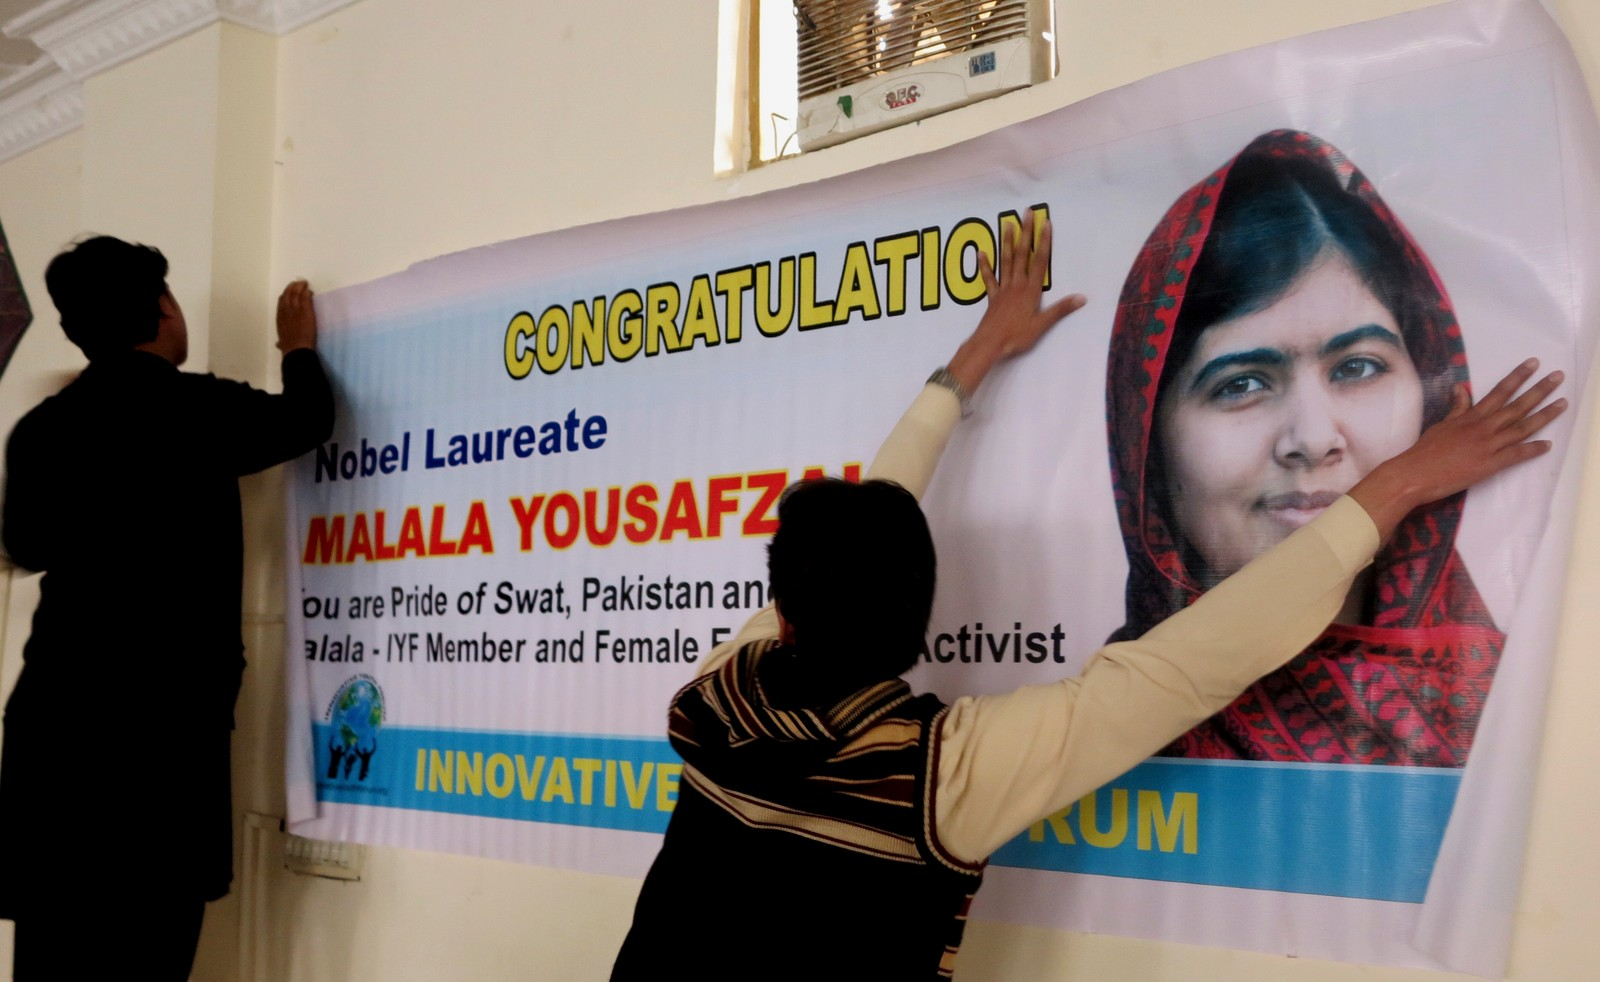 GRATULERER, MALALA: Students of Mingora, Pakistan, a hometown of Nobel Peace Prize laureate Malala Yousafzai, put a banner of her on a wall at a local school, Wednesday, Dec. 10, 2014. Malala's struggle for girls to be educated in a deeply conservative society led to a shooting against her by the Taliban two years ago. Malala and Kailash Satyarthi of India have received the Nobel Peace Prize for risking their lives to fight for children's rights.